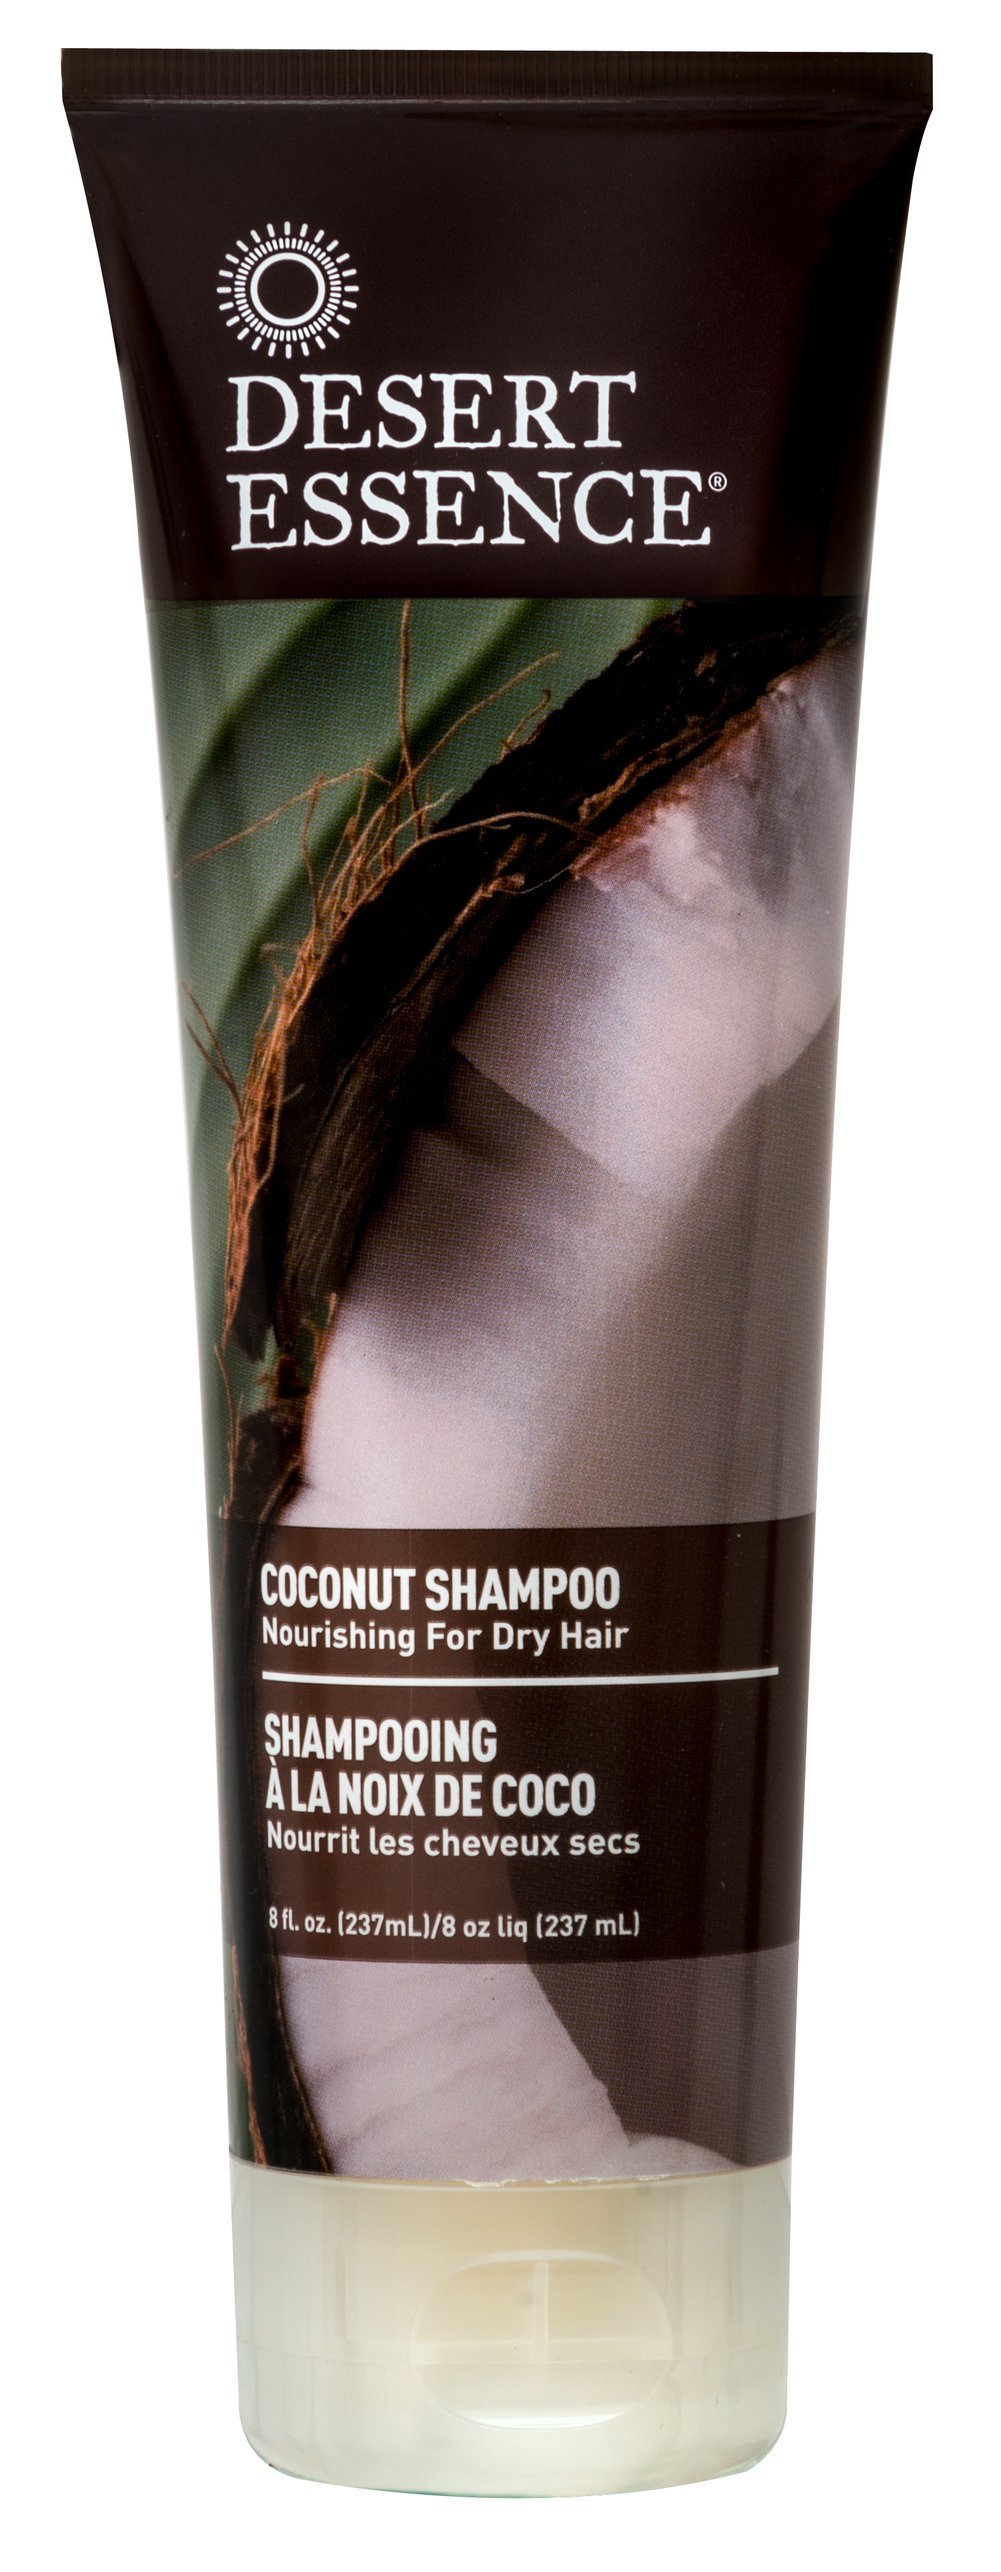 Desert Essence® Coconut Shampoo <p><strong>From the Manufacturer's Label:</strong></p><p>Nourishing for Dry Hair</p><p>Bring back shine and health to over-processed, damaged hair. Infused with organic coconut oil to provide intense moisture, smooth frizzies, and restore hair's natural luster. With continued use, hair looks revived, strong and healthy.</p><p>Manufactured by Desert Essence®.</p> 8 fl oz Shampoo  $5.89